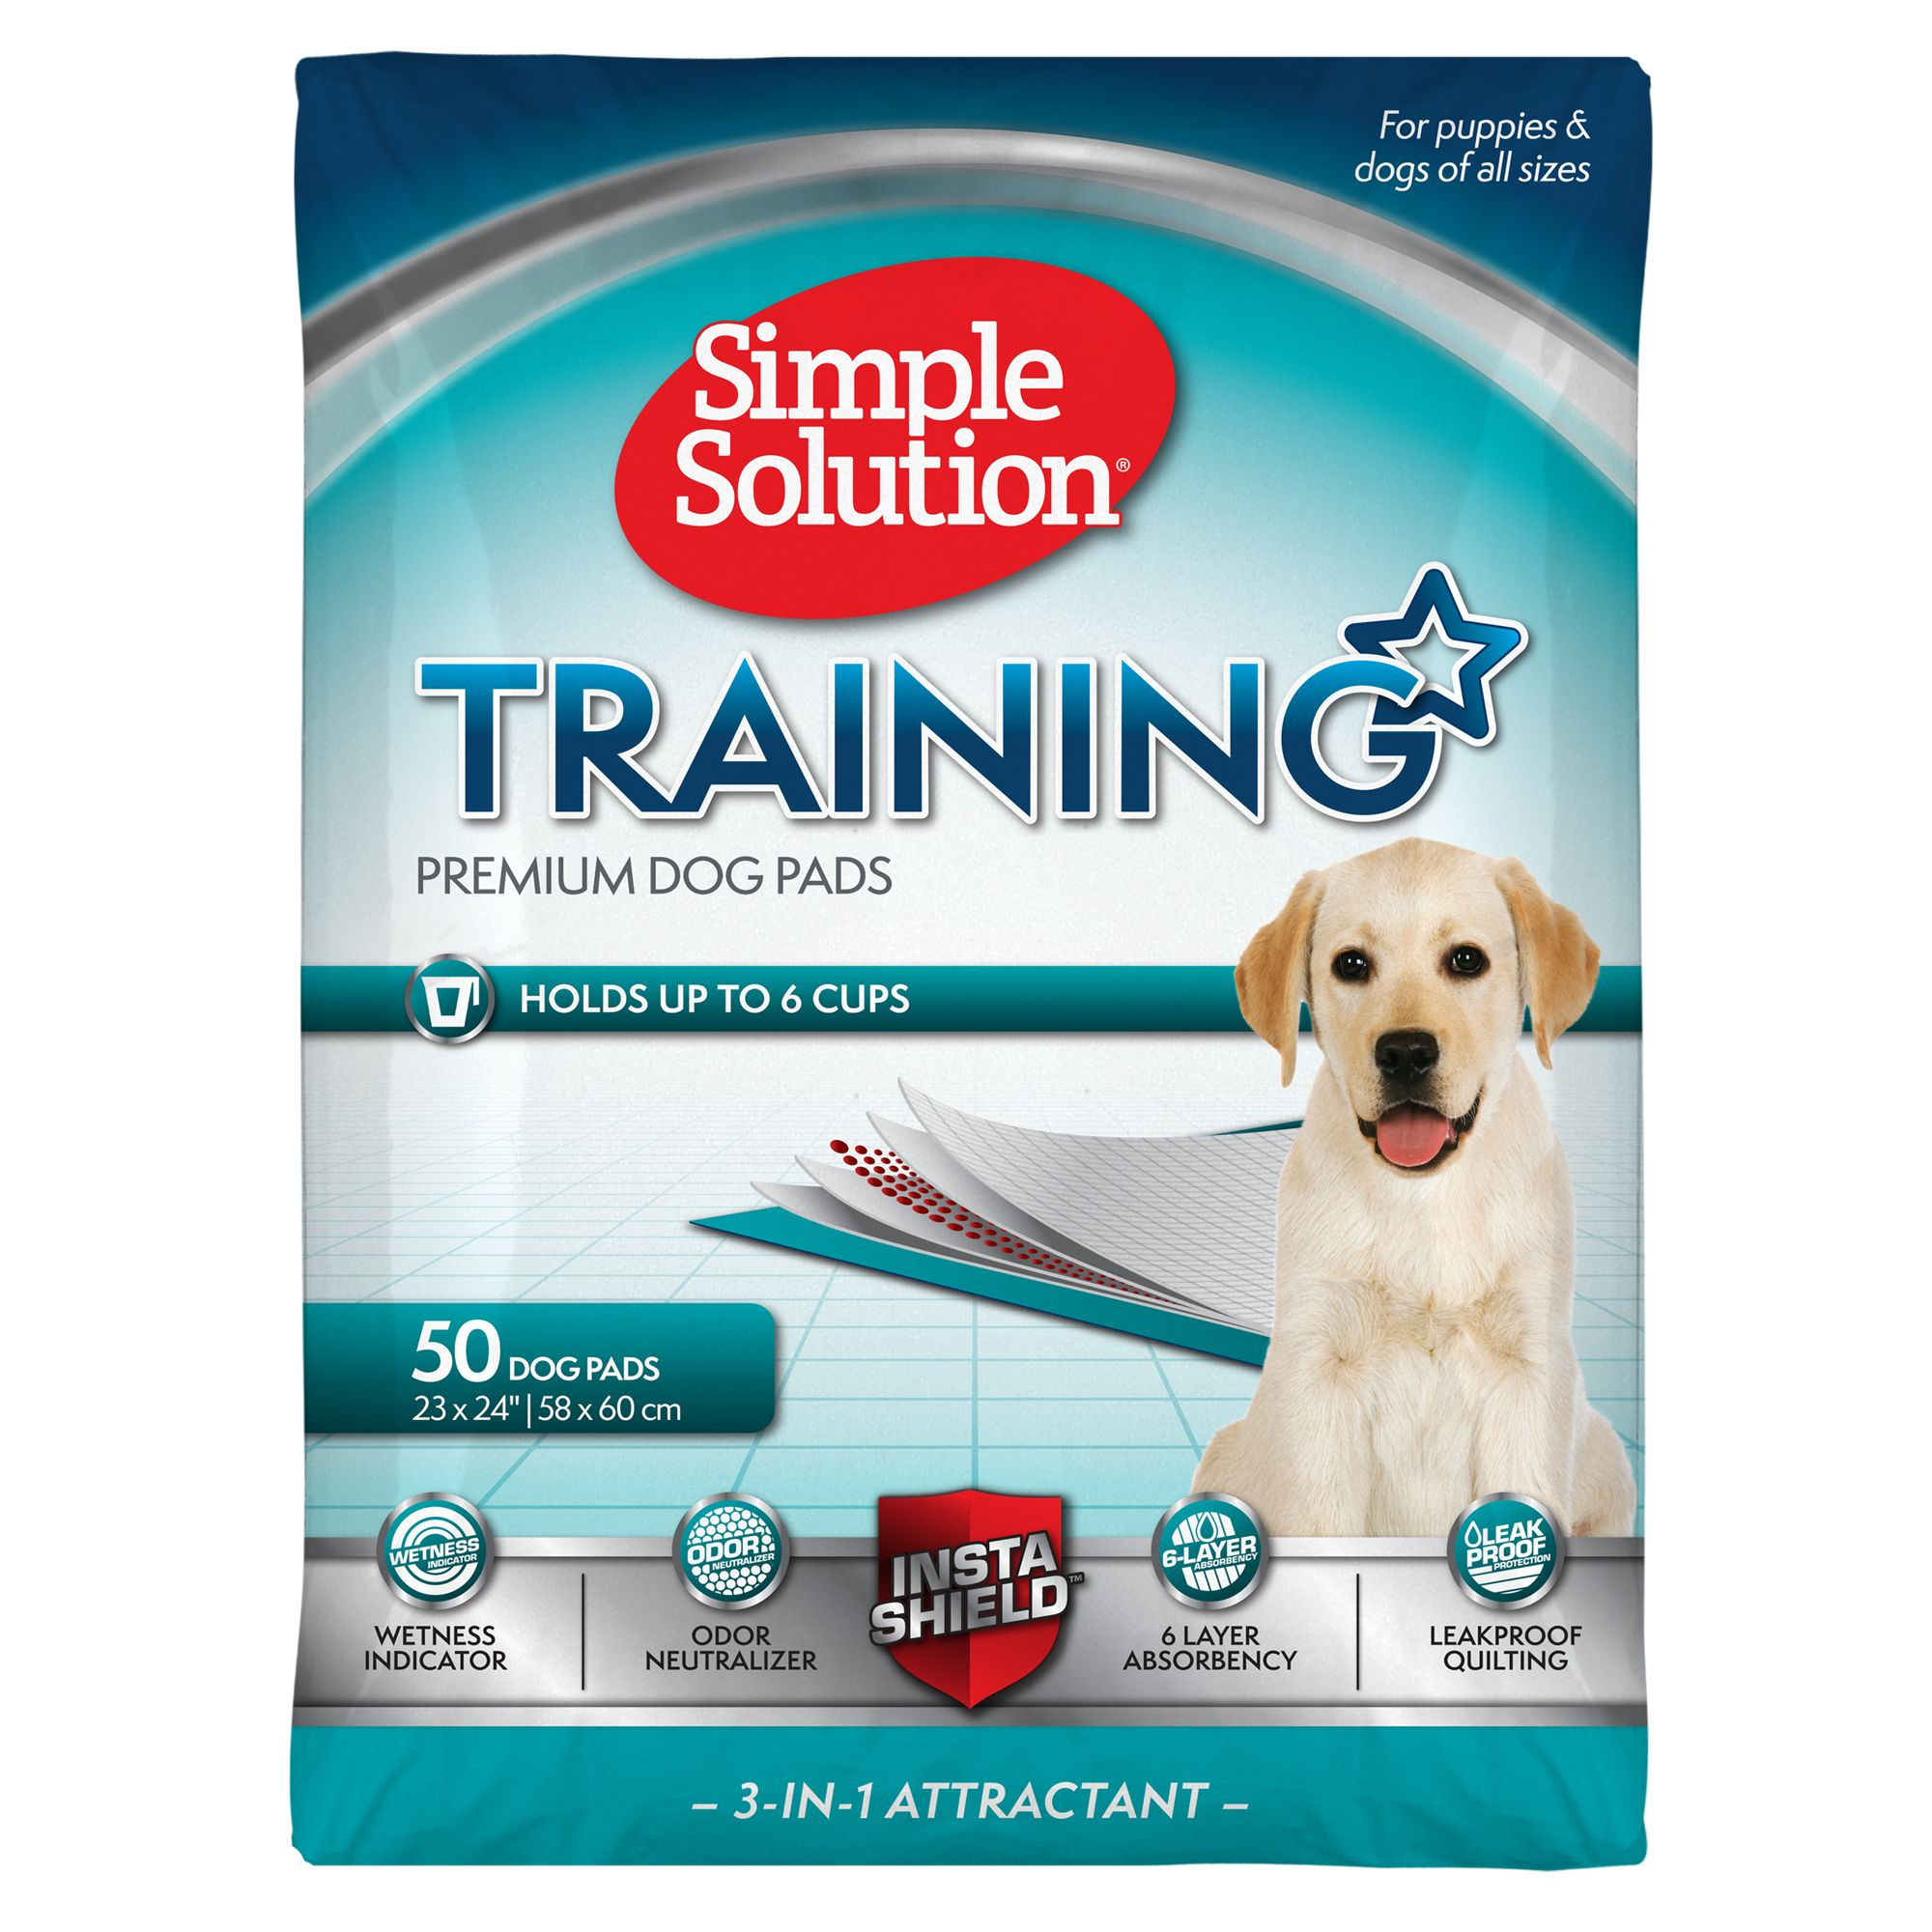 Simple Solution Training Dog Pads size: 50 Count 5147156